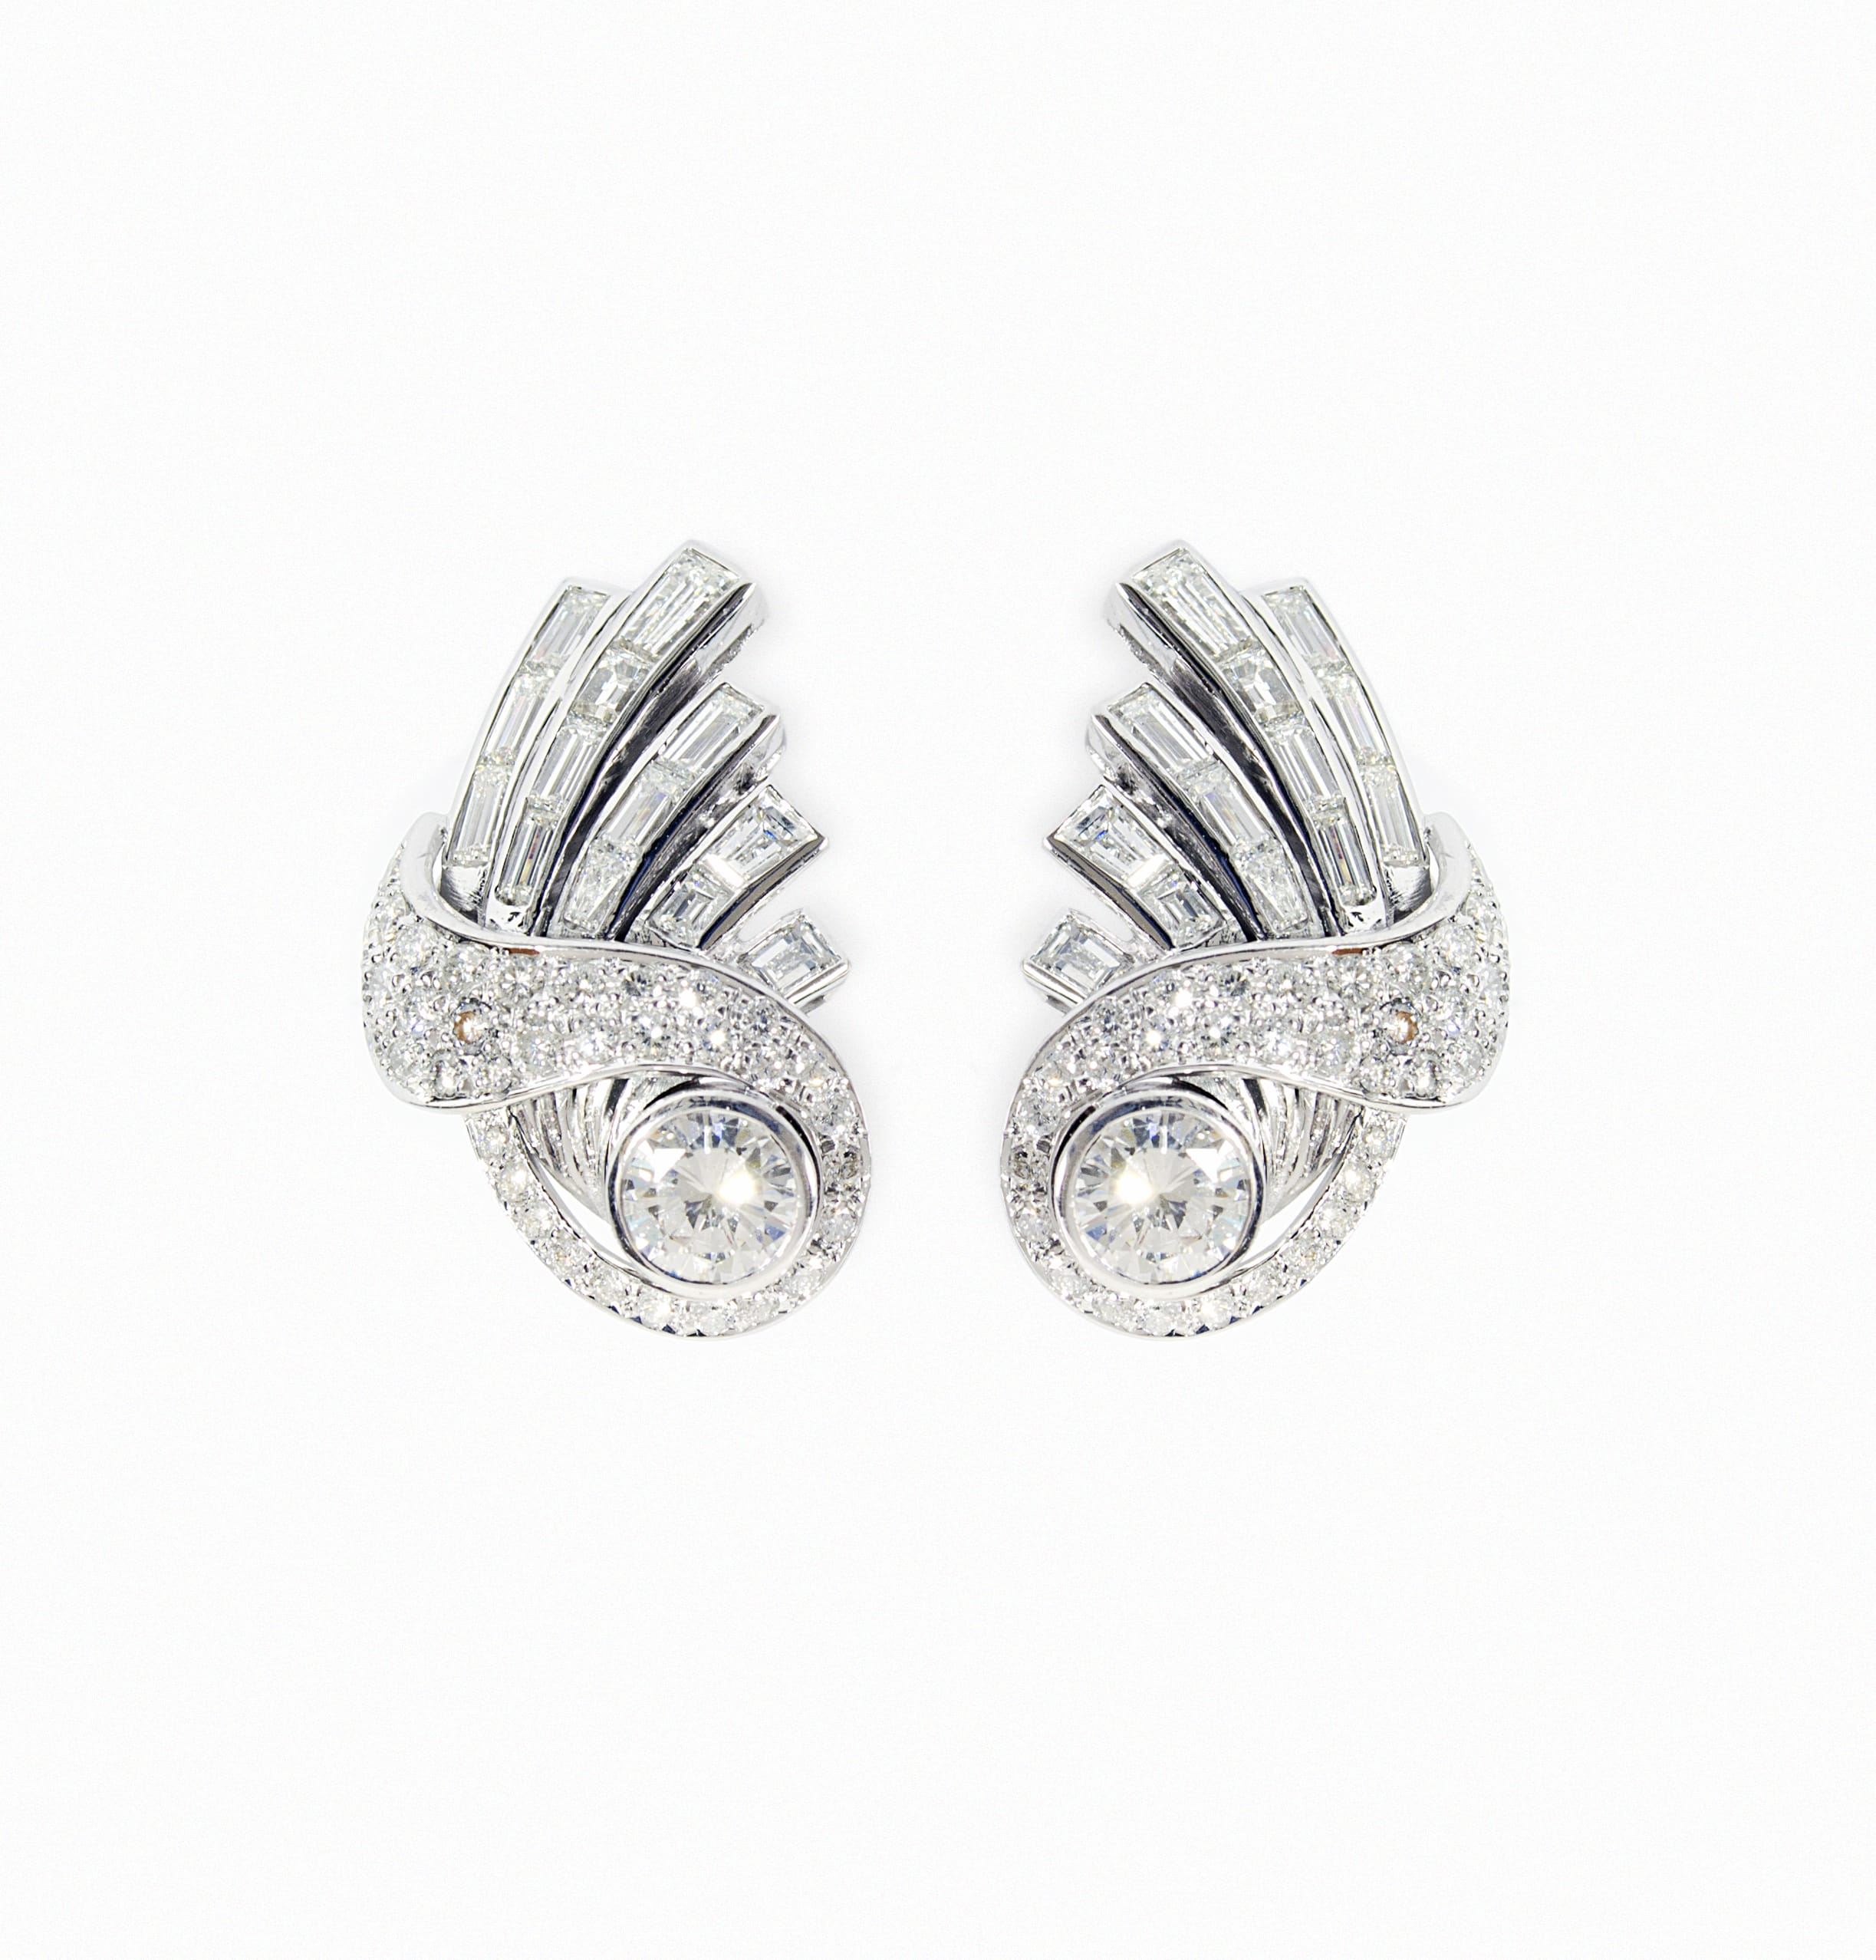 White Gold Earrings with brilliant cutted diamonds